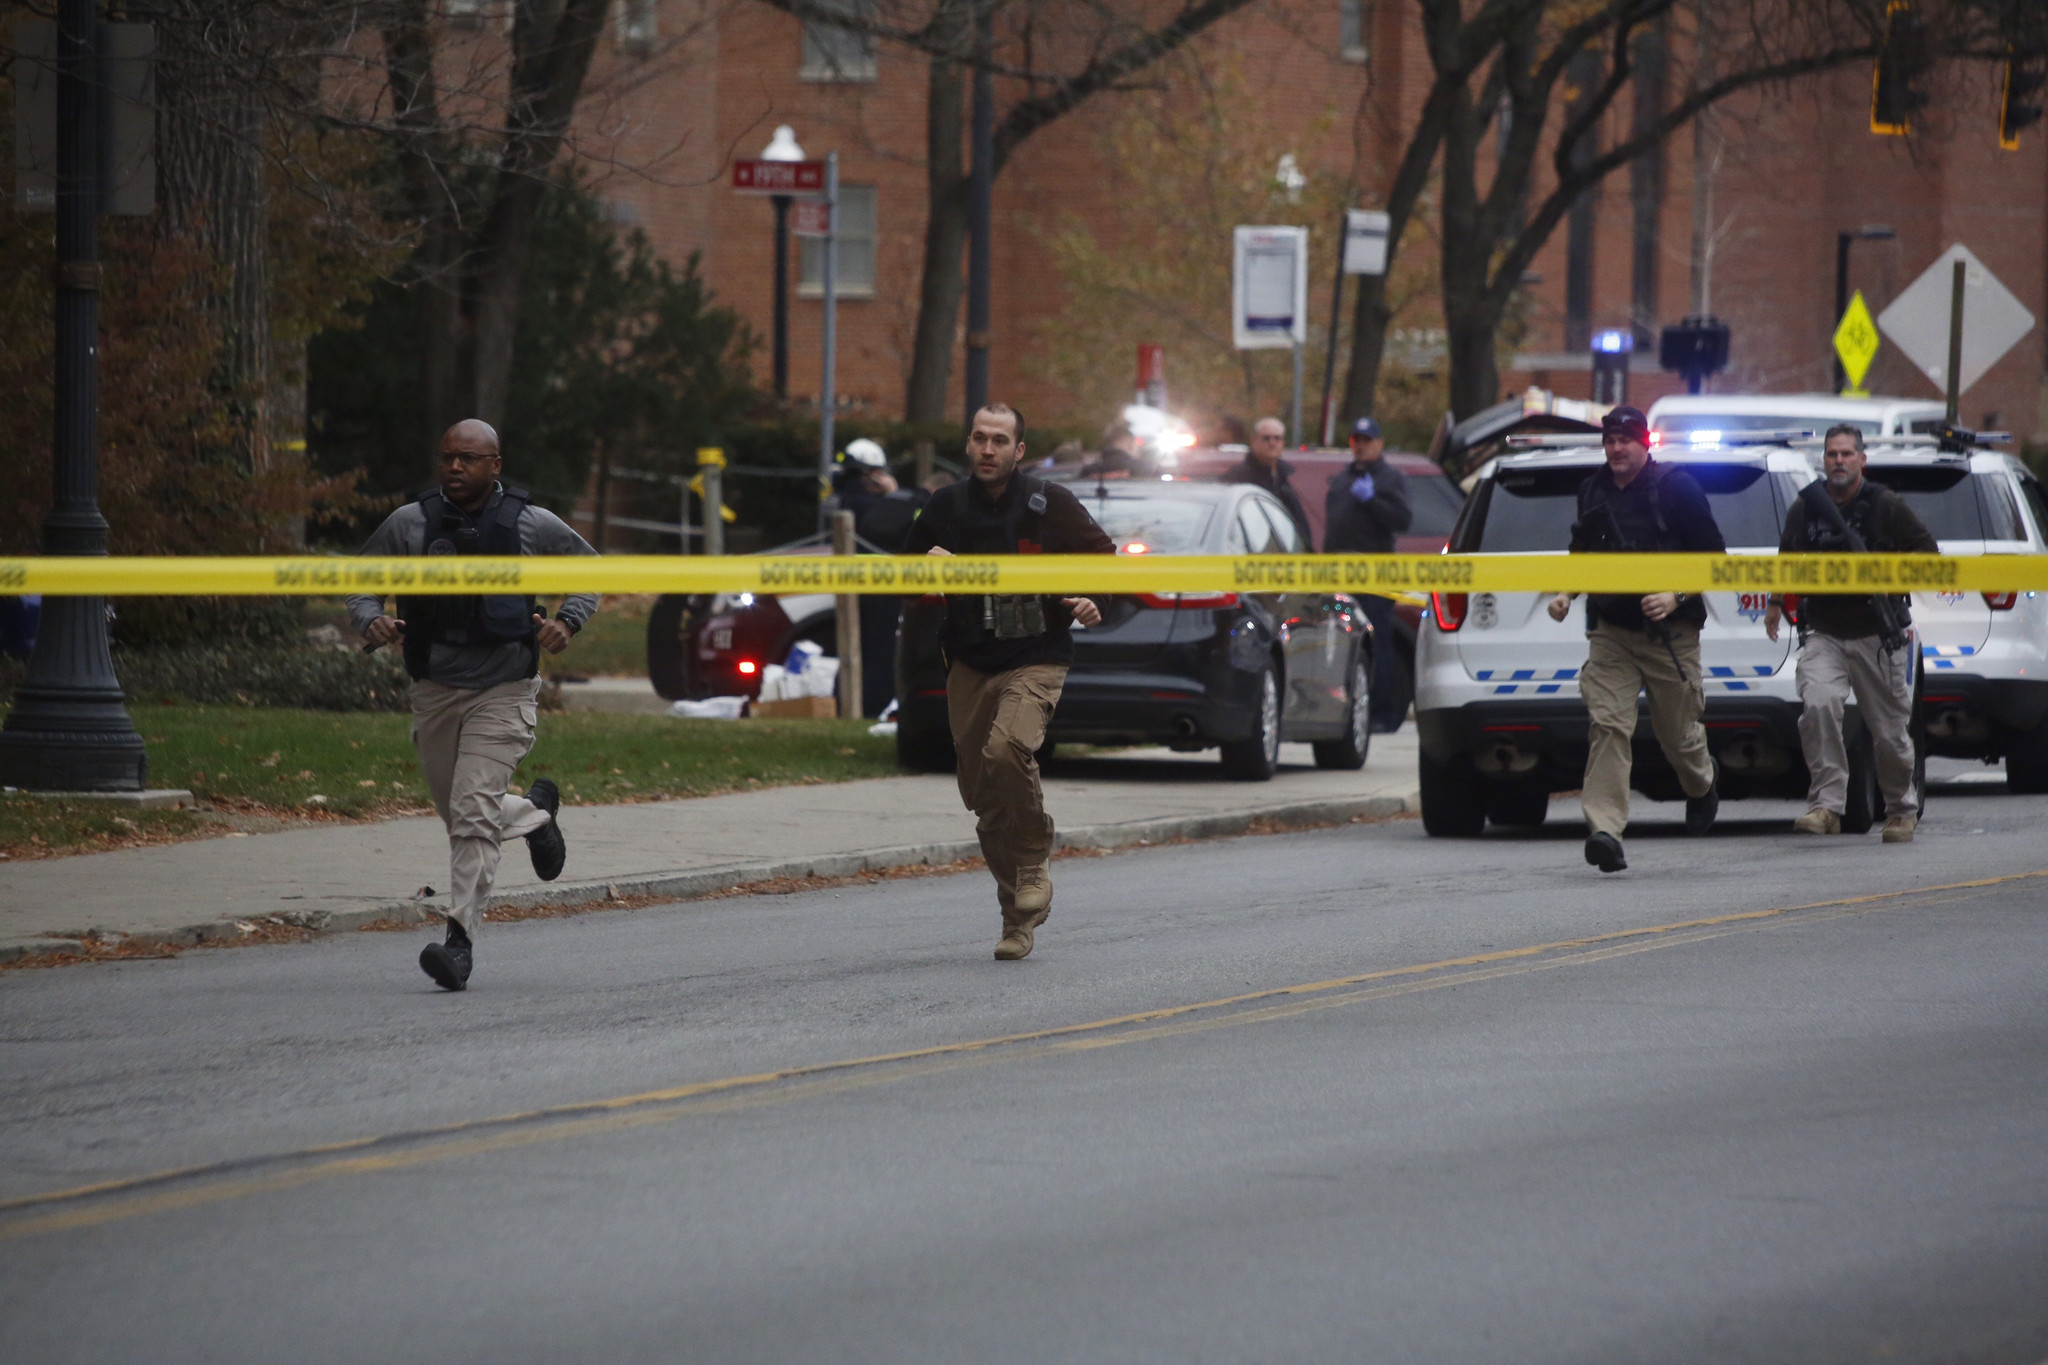 suspect who injured 11 in ohio state attack identified as student